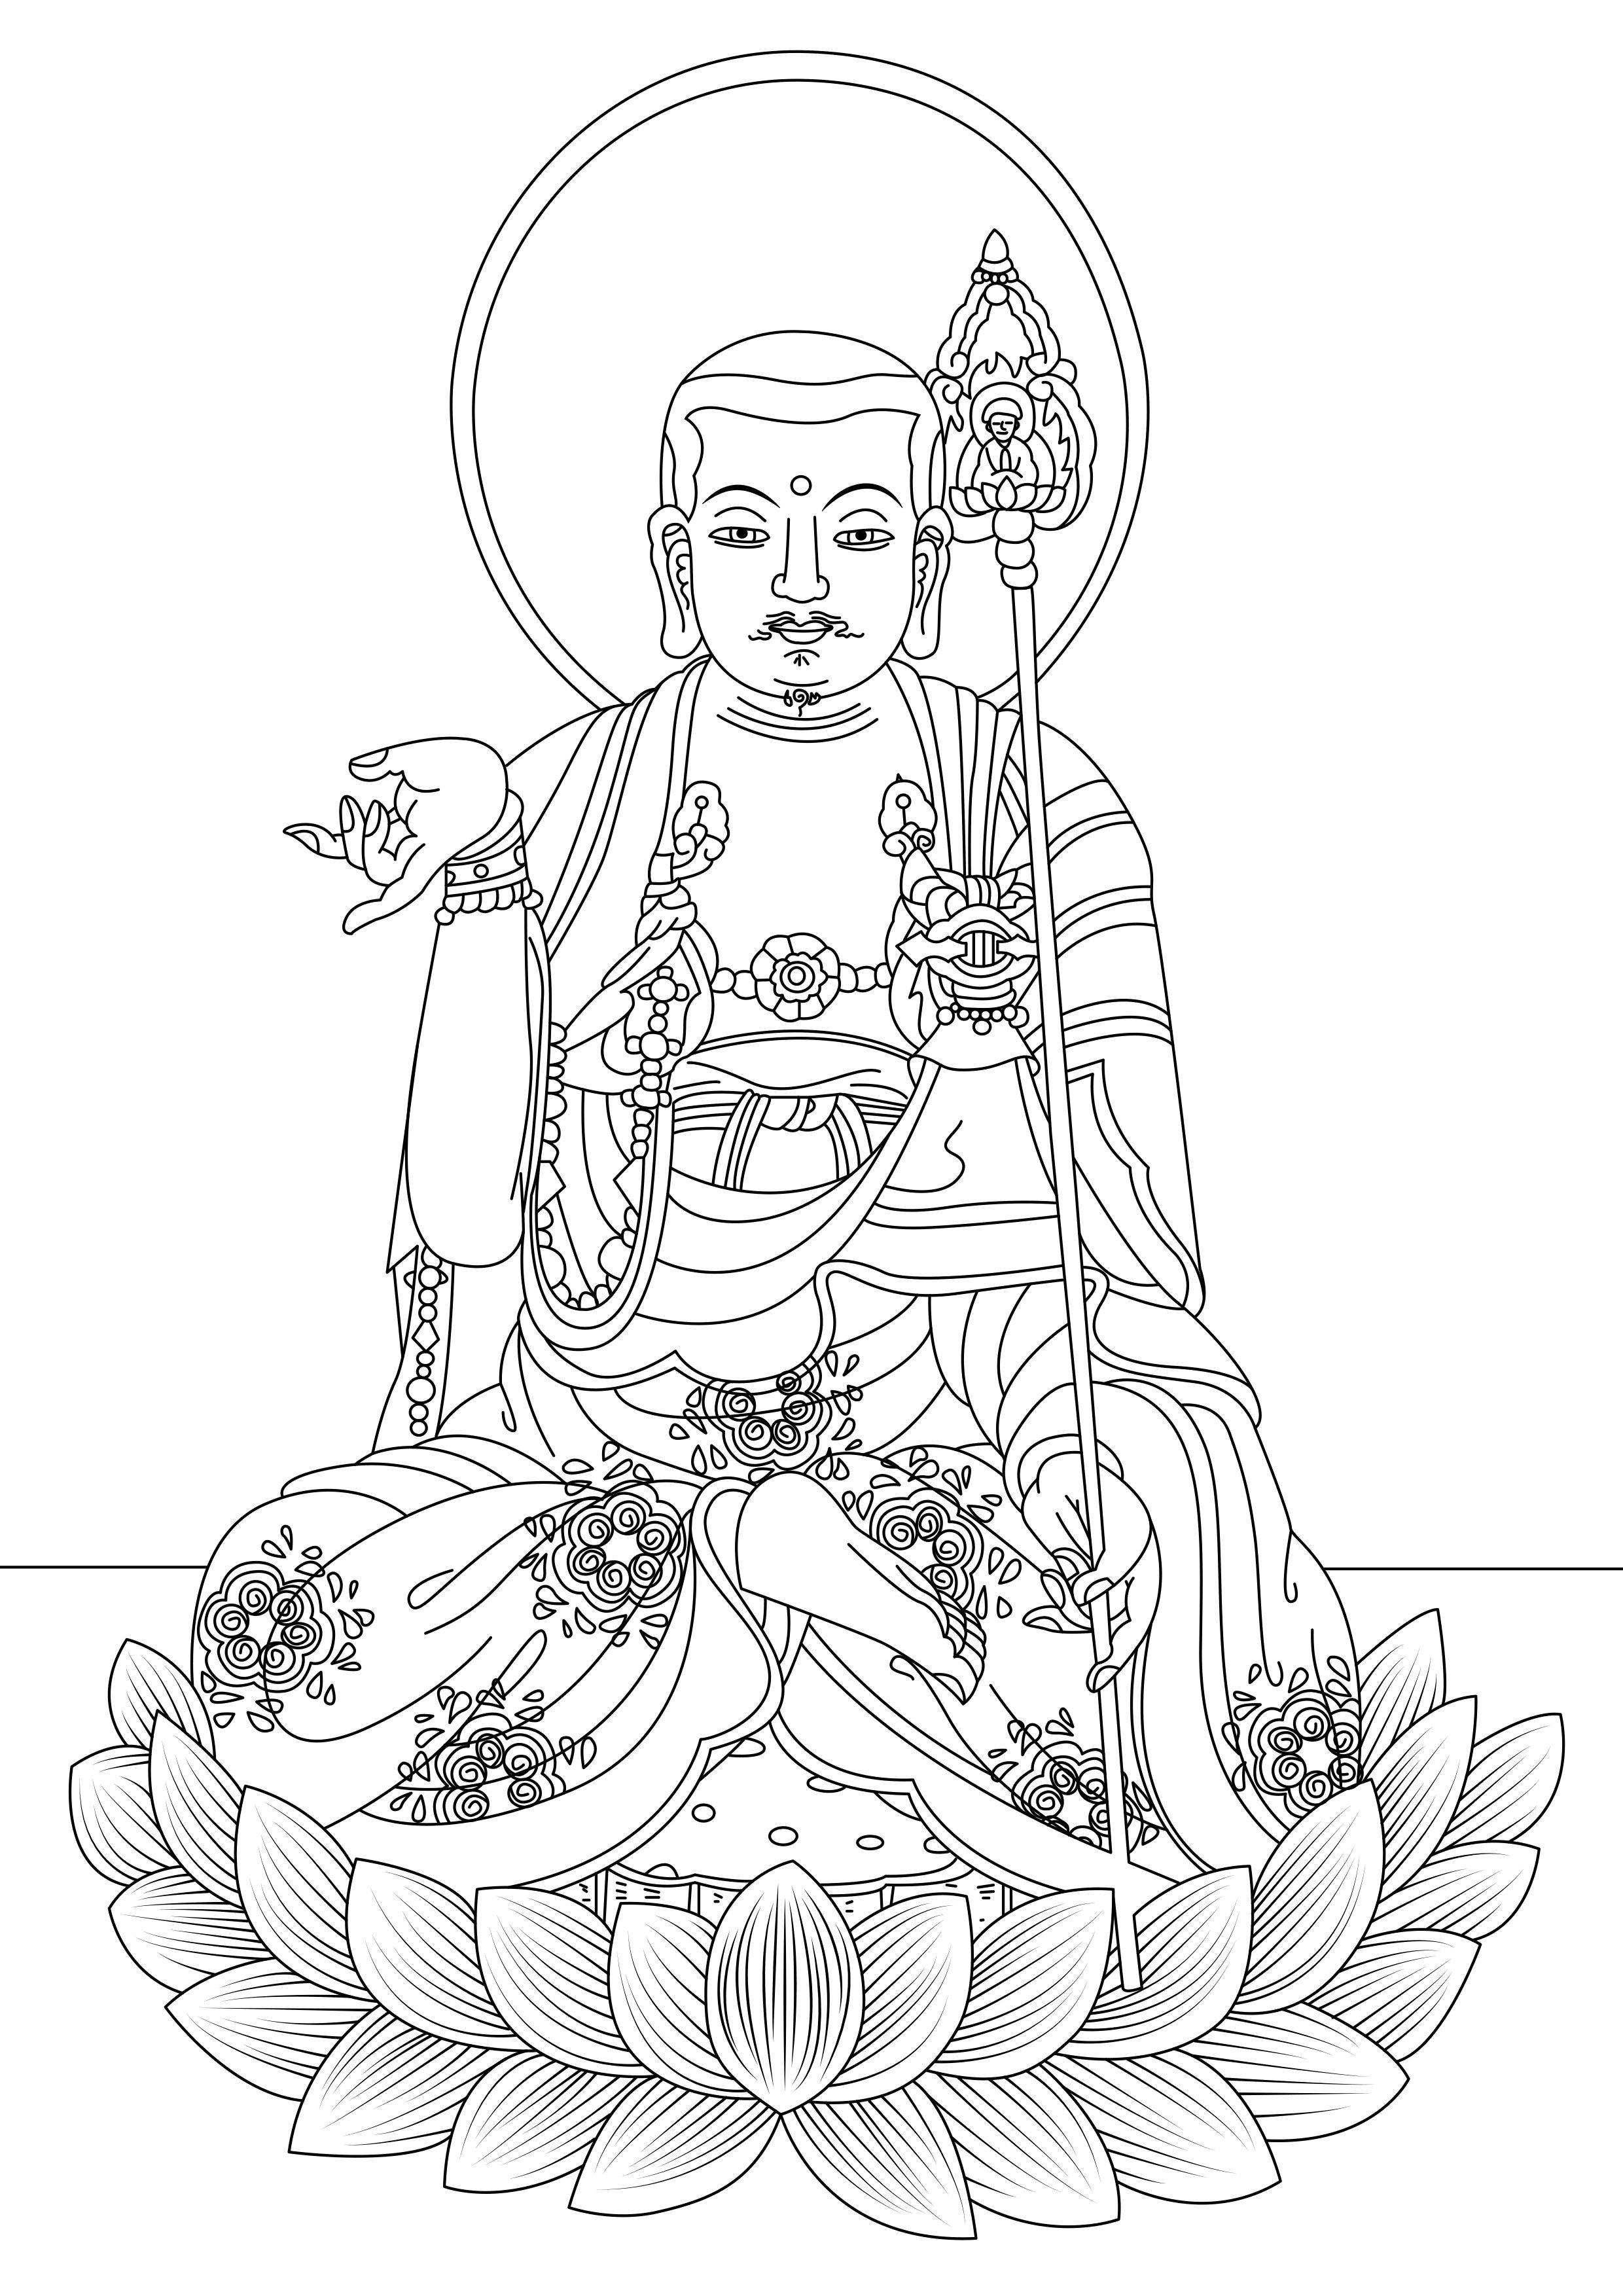 Coloring page created from a painting